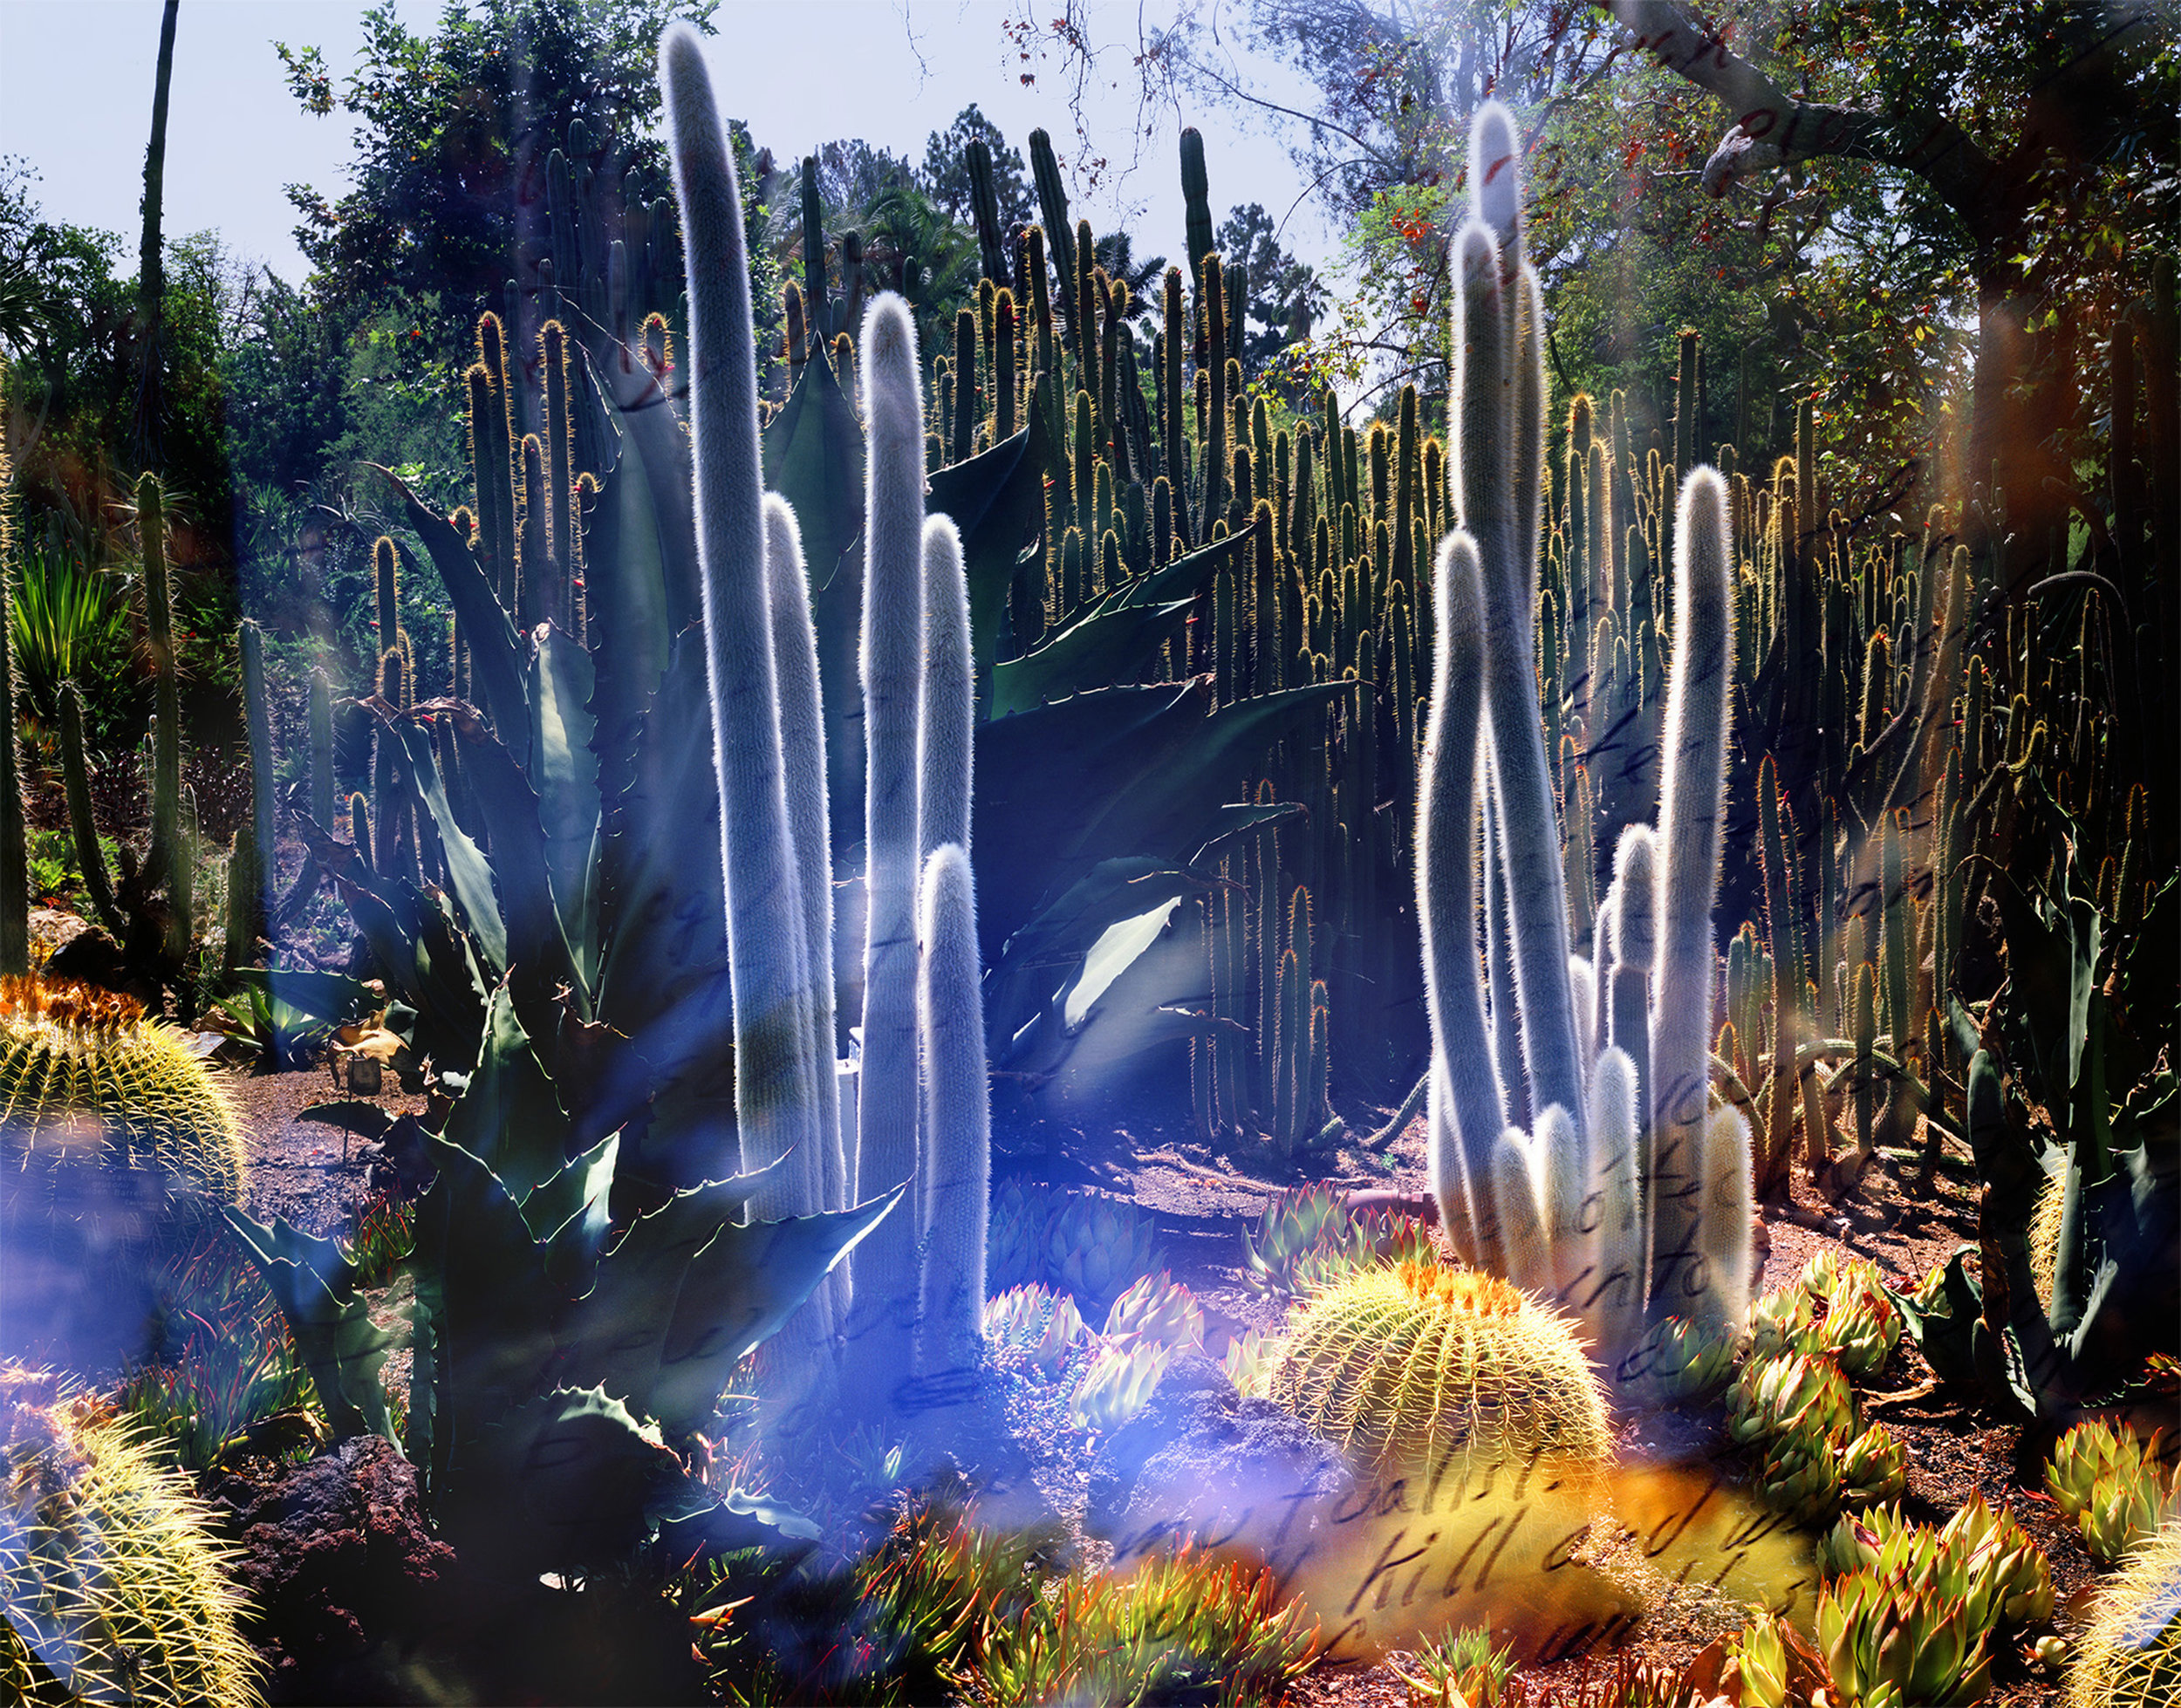 Connie Samaras,  The Past is Another Planet: Huntington Desert Garden (Cacti) and OEB 1723, novel fragment from the Parable of the Sower, 1989 , 2016  Digital pigment print, 36 x 46 inches (variable), edition of 5   Inquire